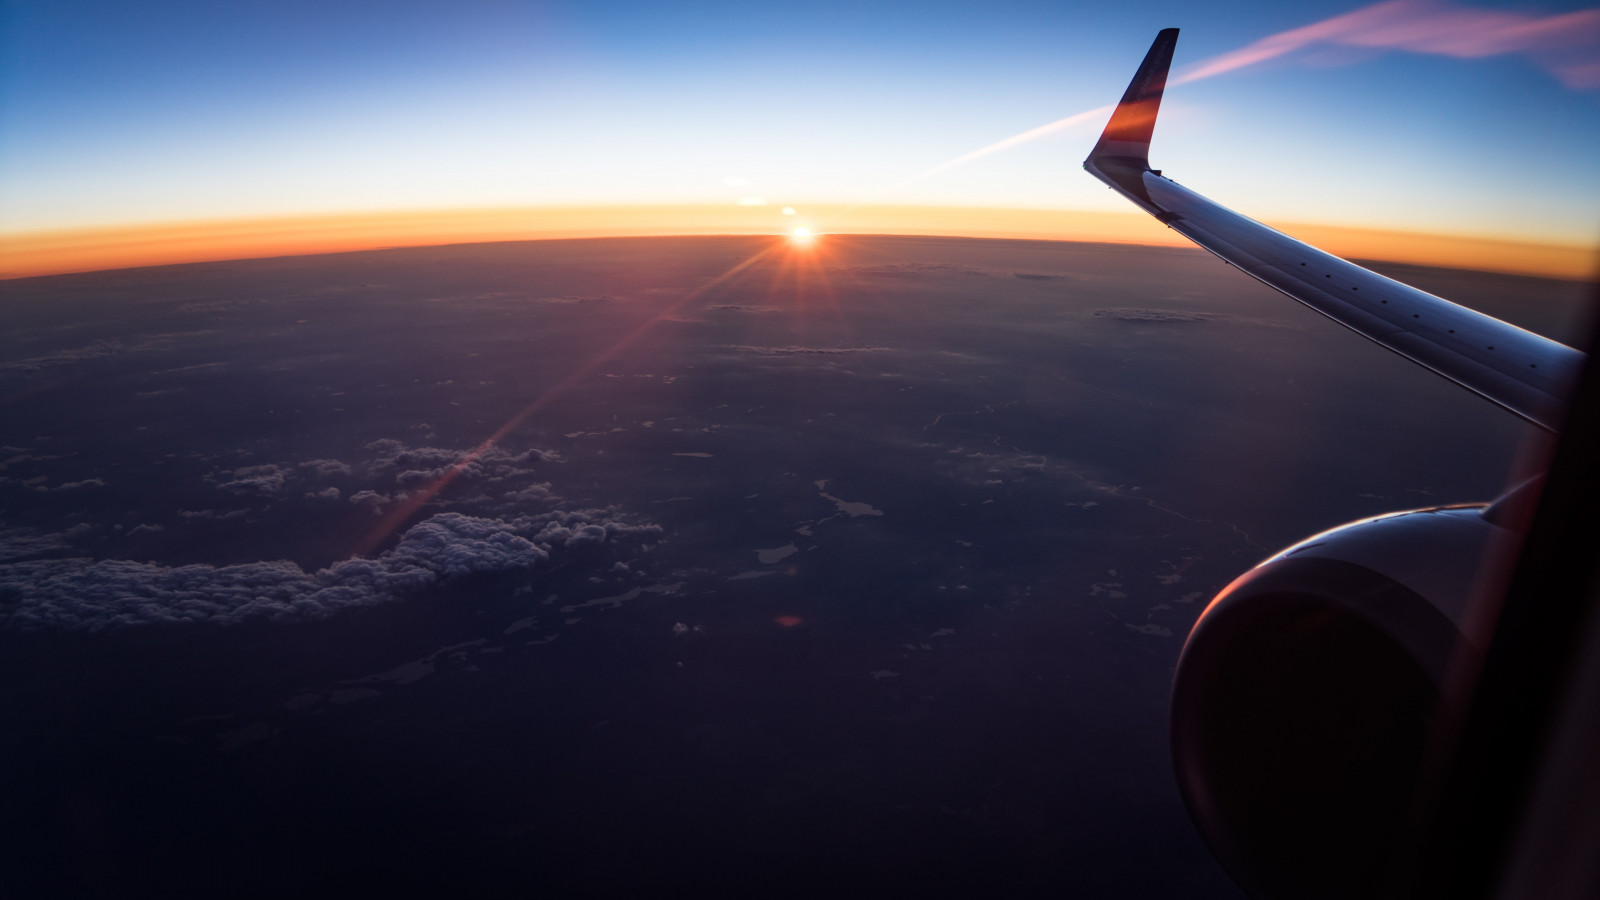 In the plane watching the sunset wallpaper 1600x900